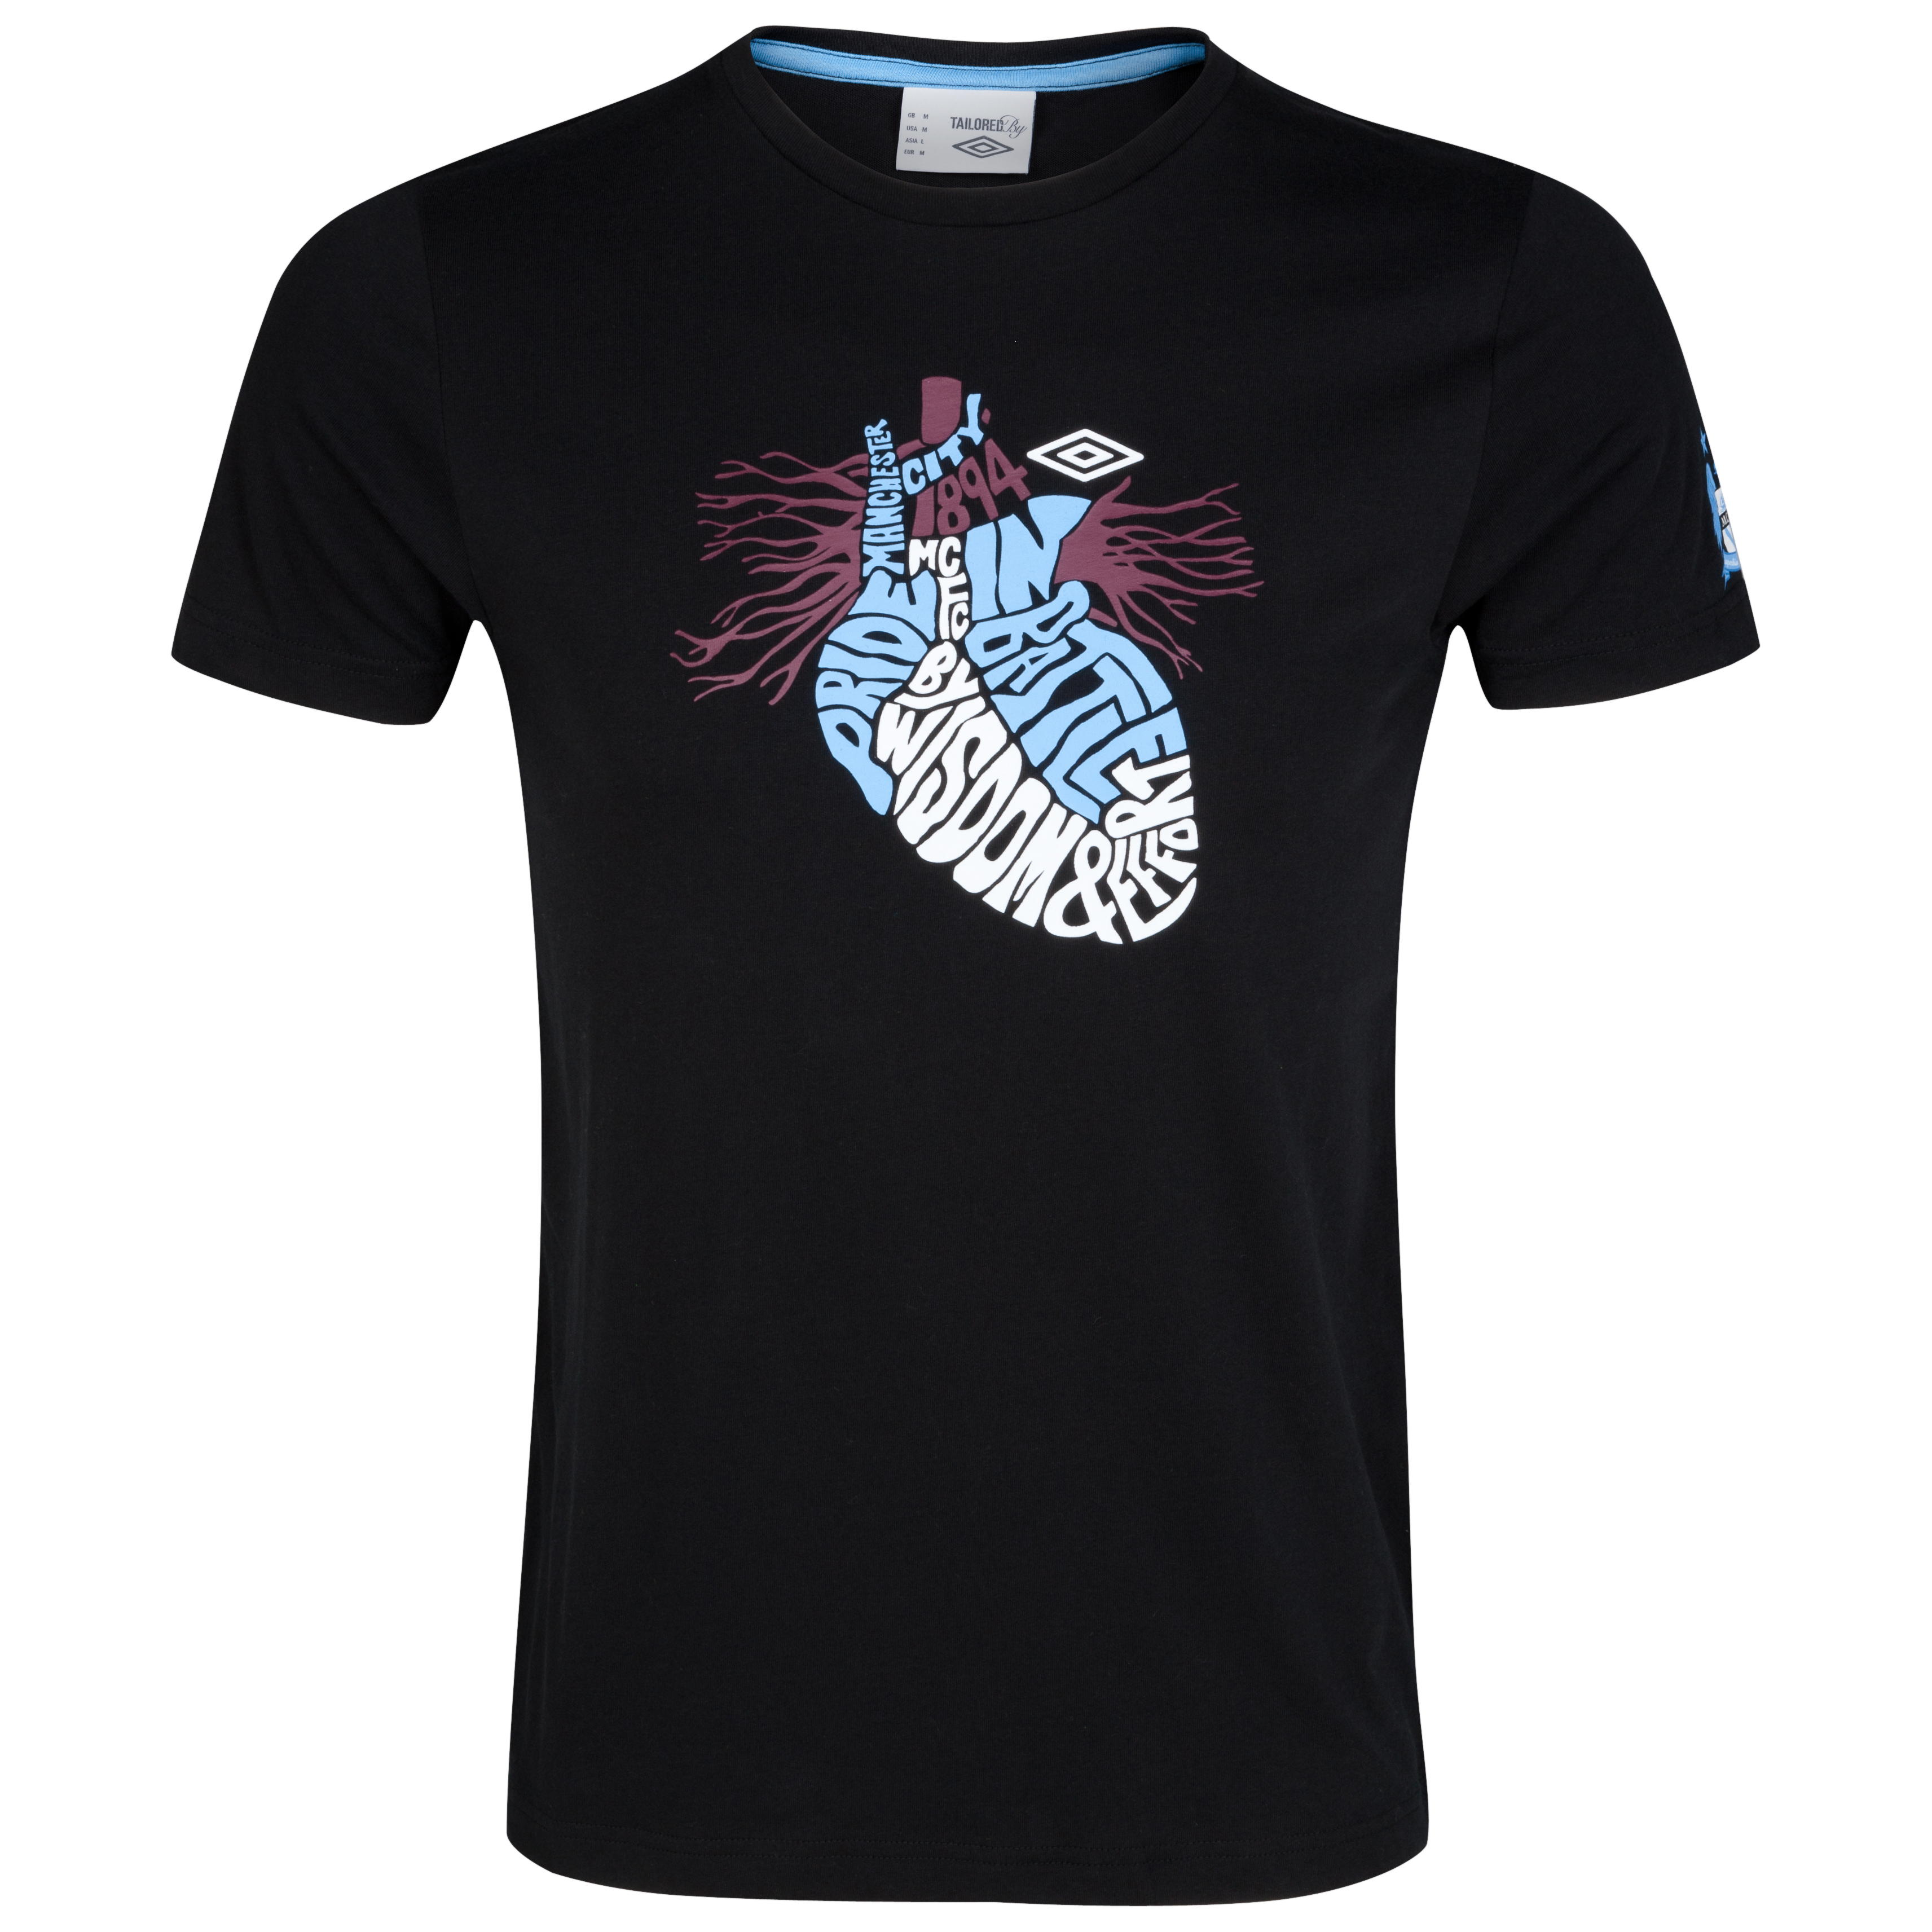 Manchester City WTC Heart Wording Graphic T-Shirt - Black